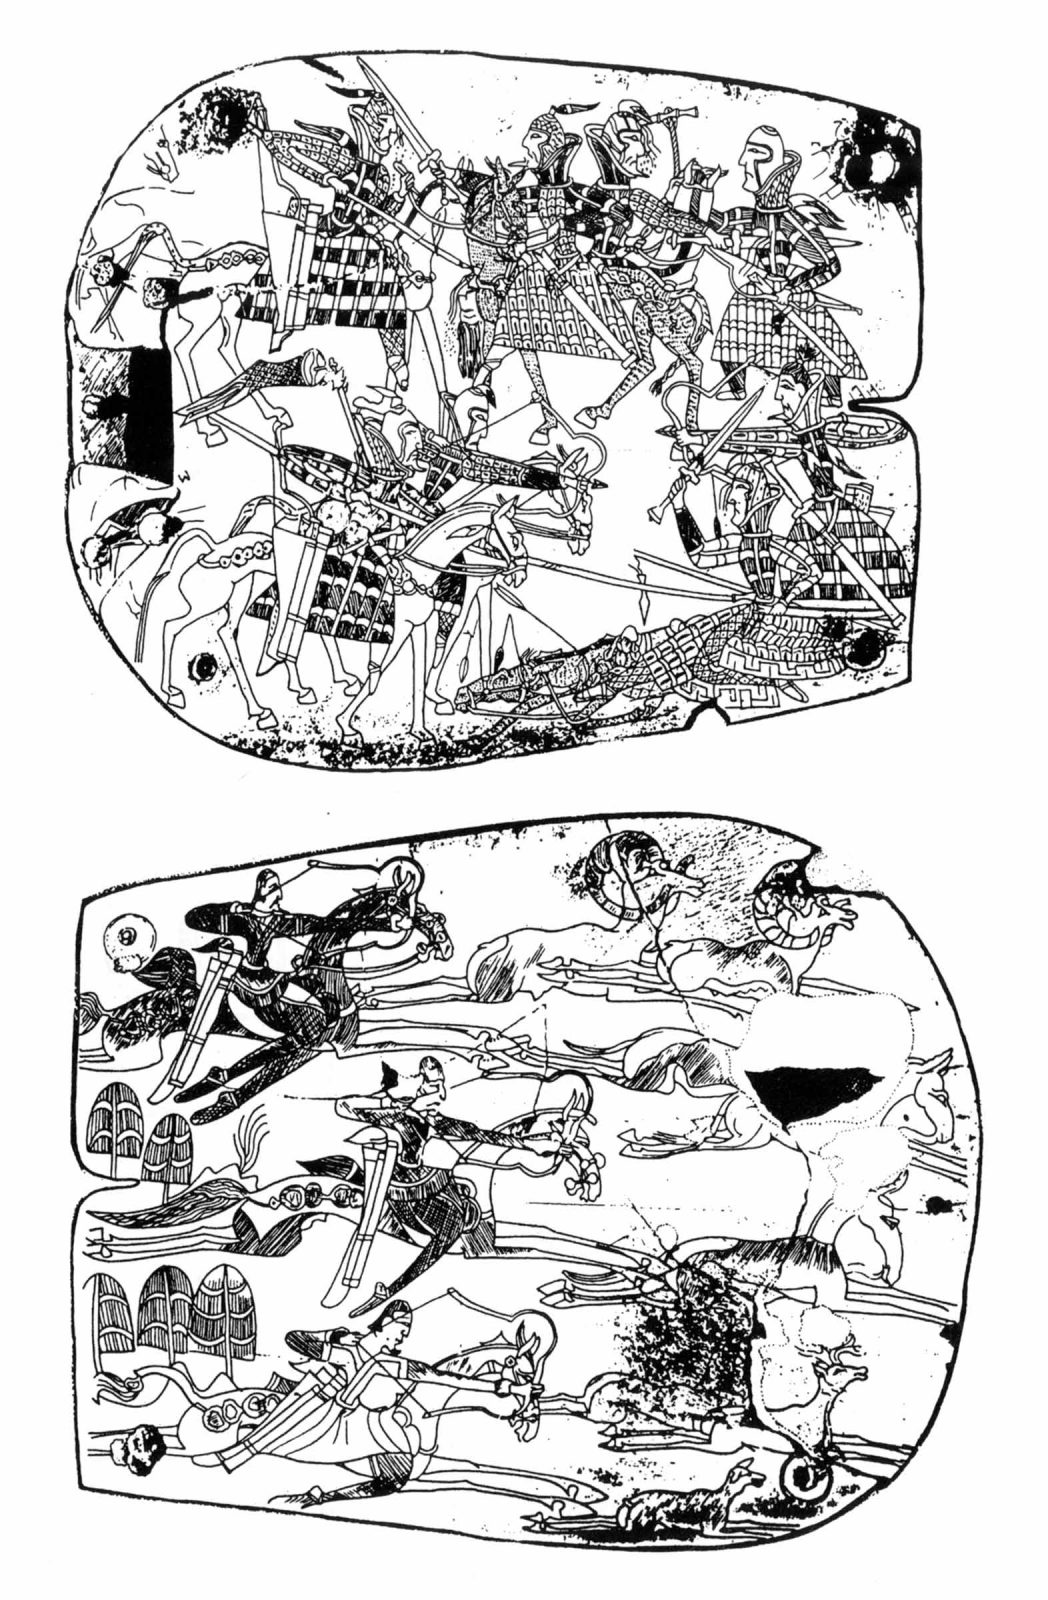 Line drawing of two square belt plaques showing horseback riders engaged in battle